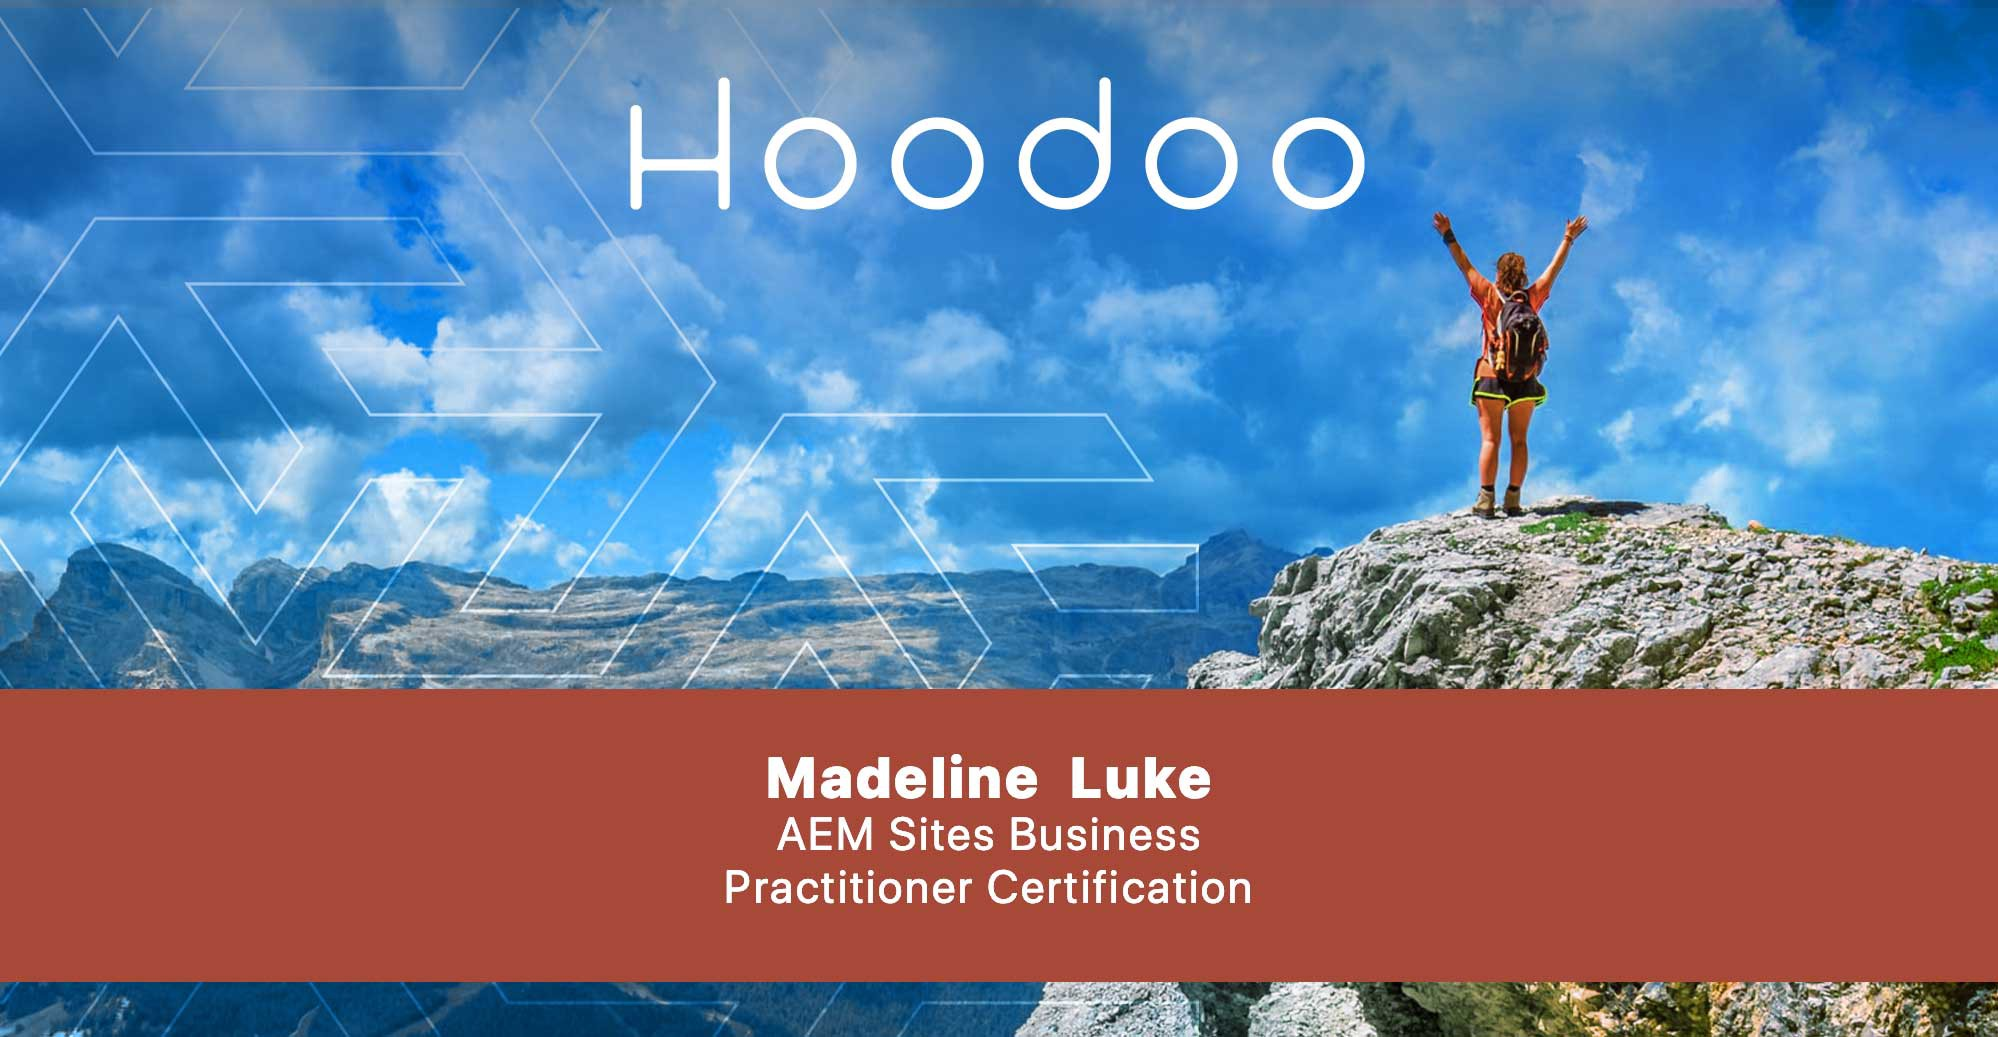 Madeline Luke Completes AEM Sites Business Practitioner Certification